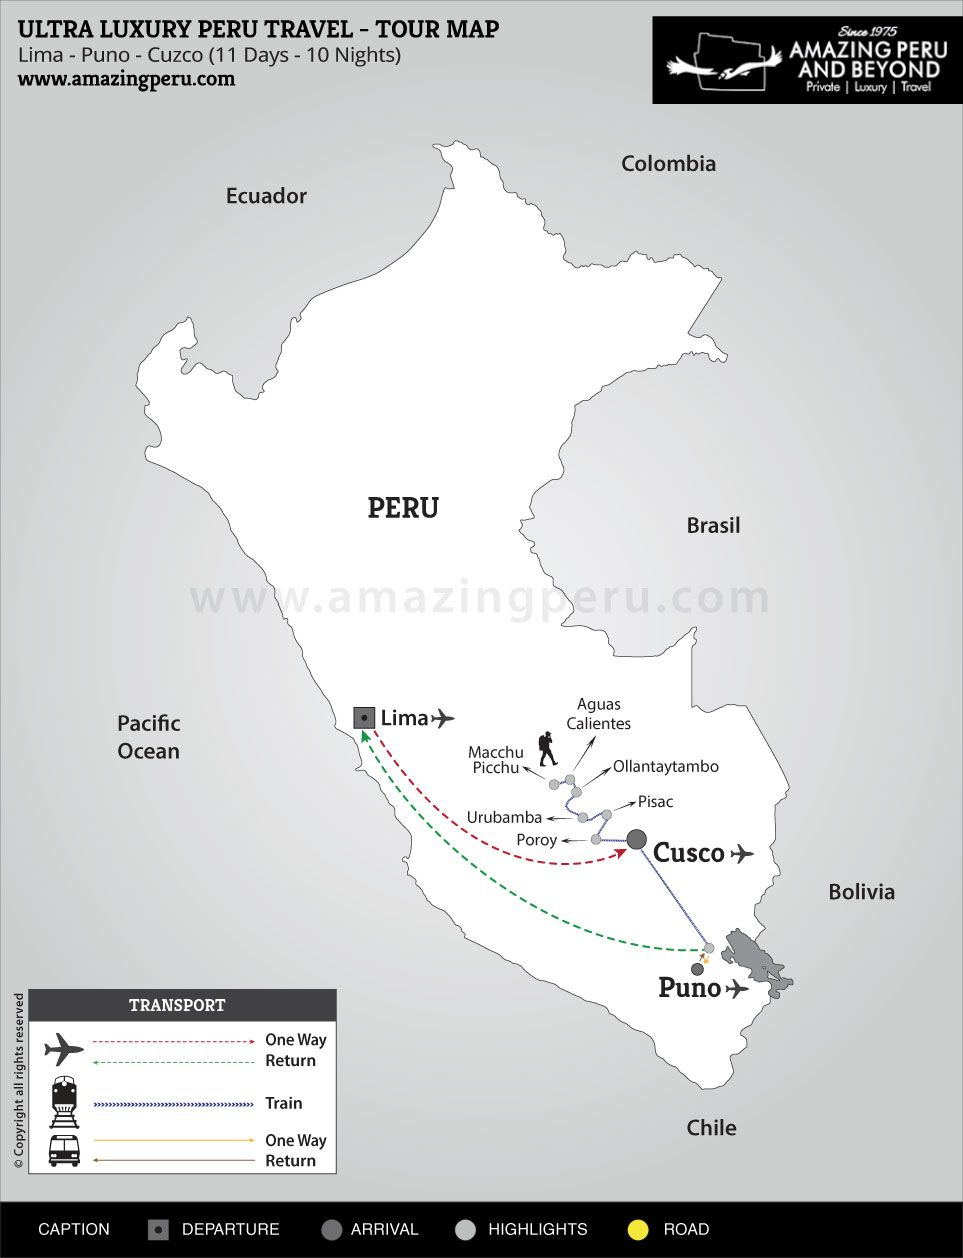 Ultra Luxury Peru Travel - A personal discovery - 11 days / 10 nights.